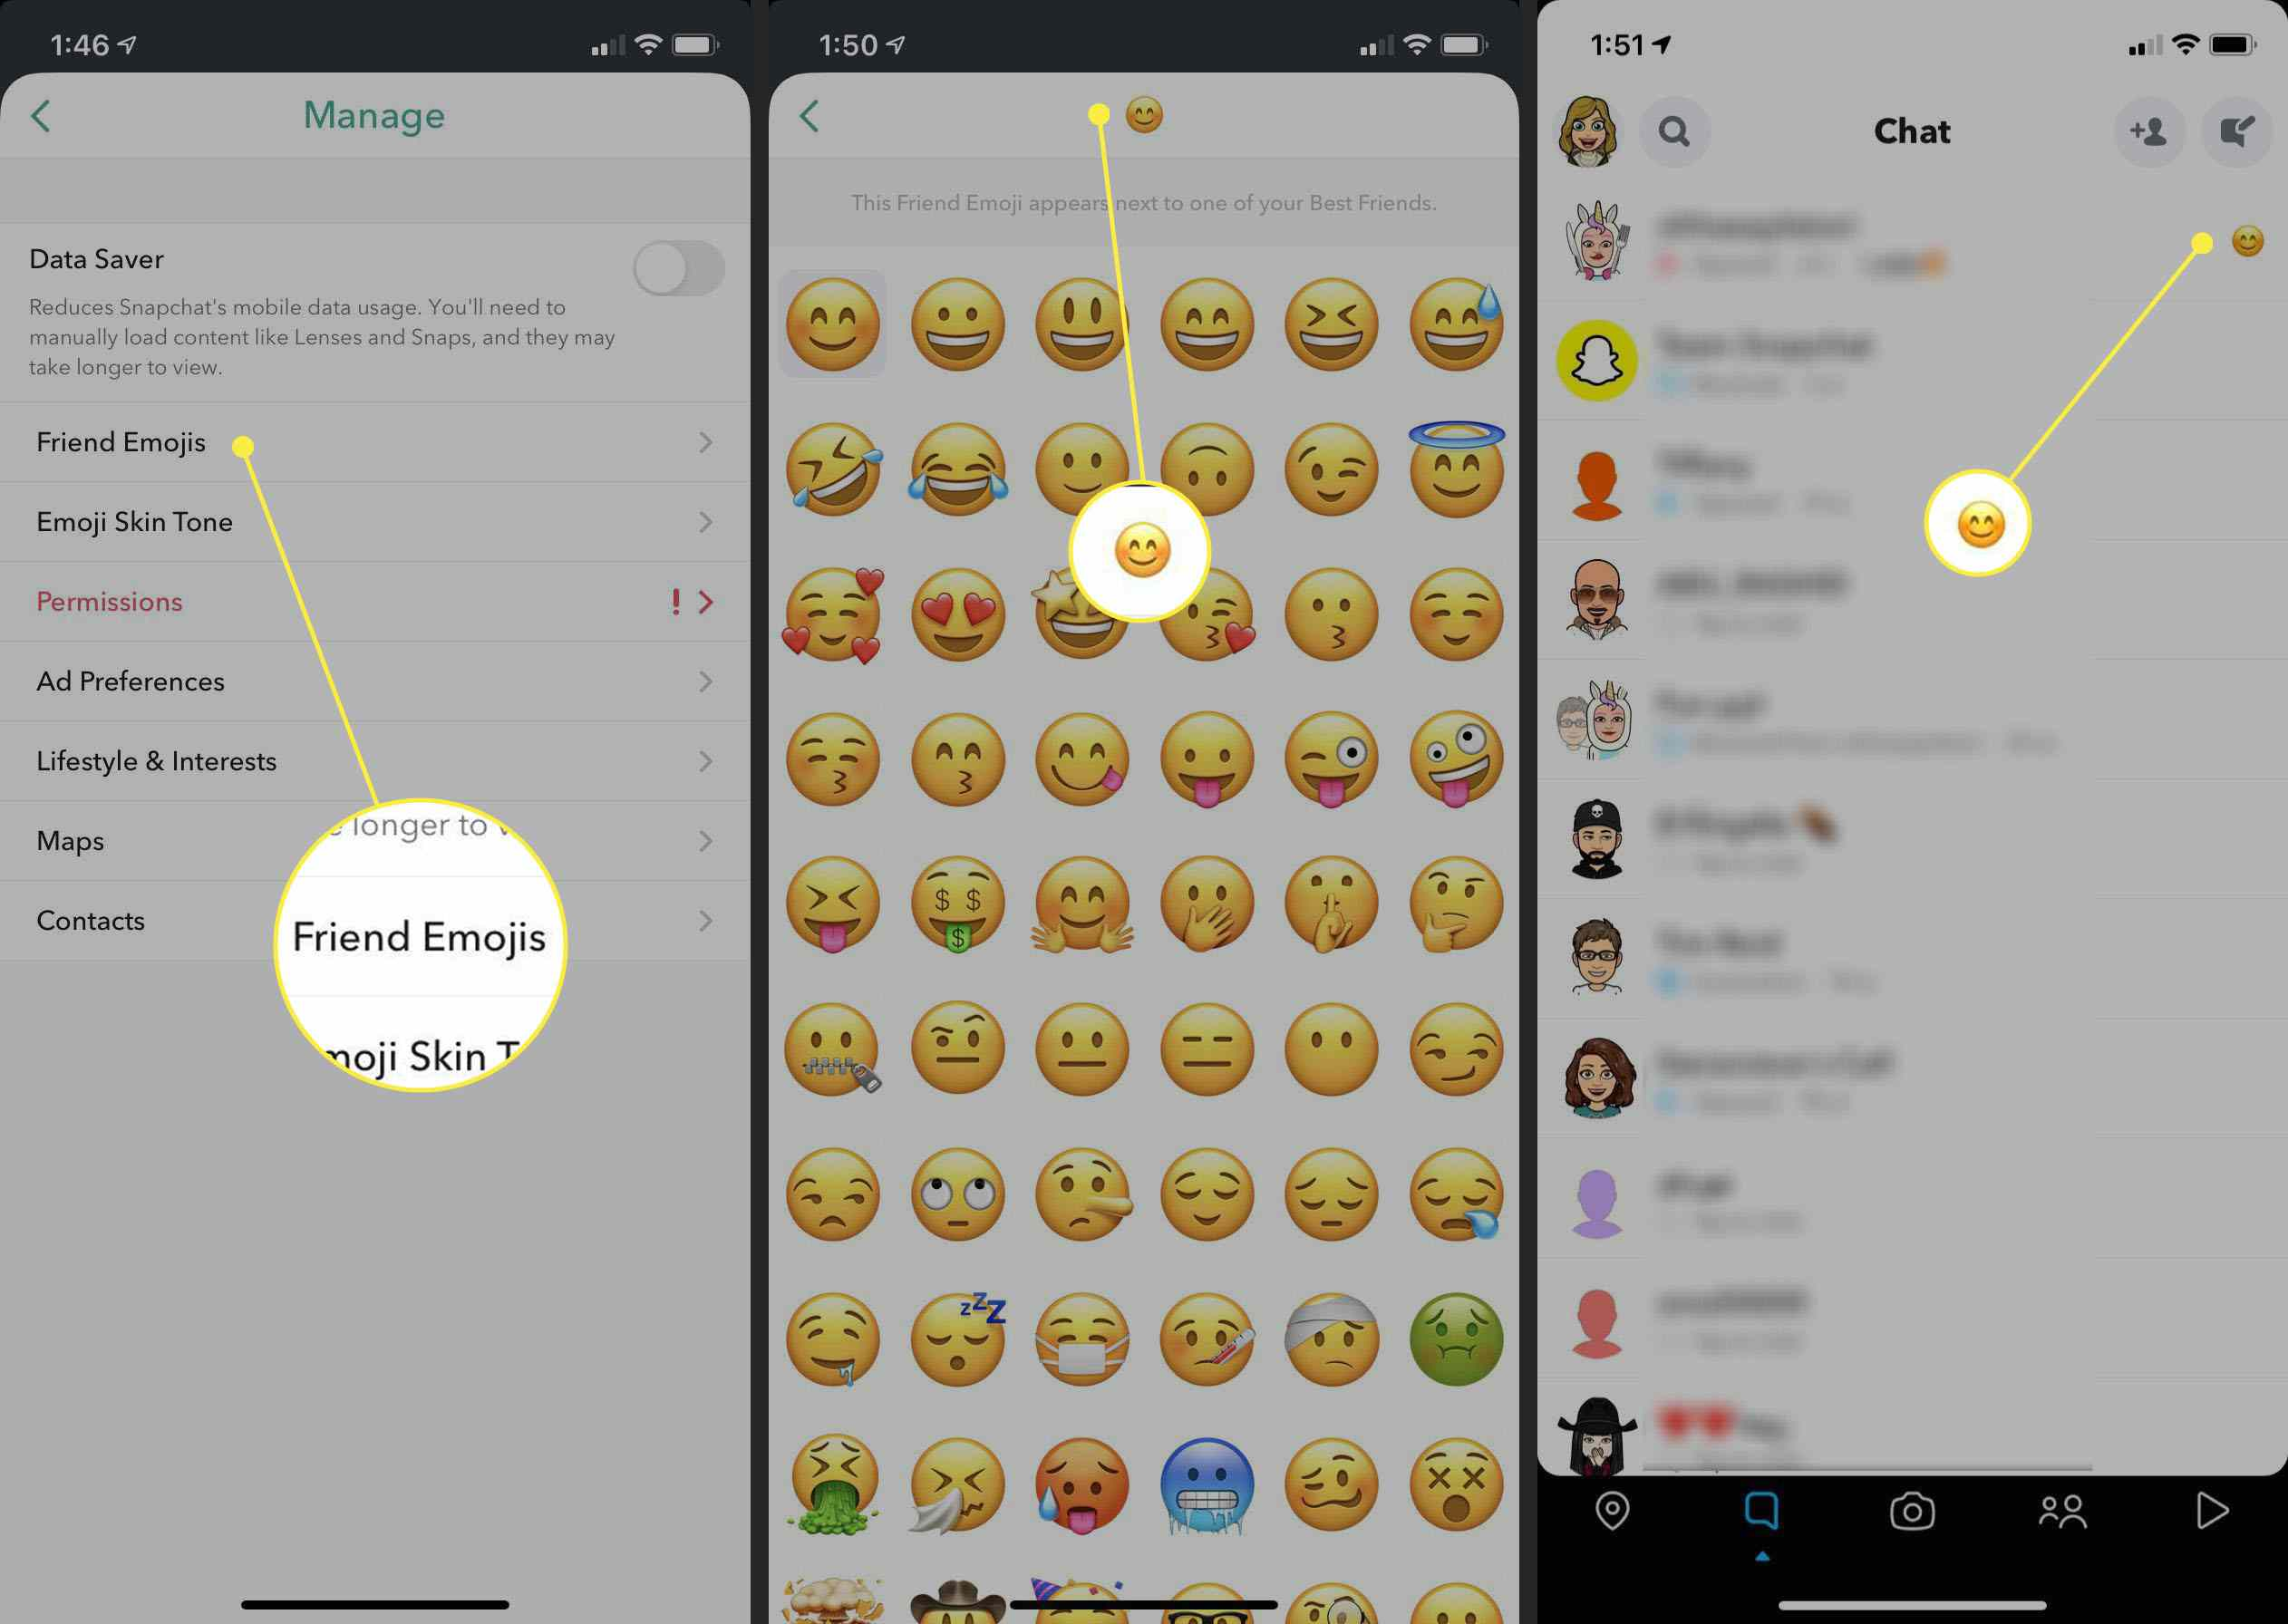 Steps to change emoji in a conversation on Snapchat.